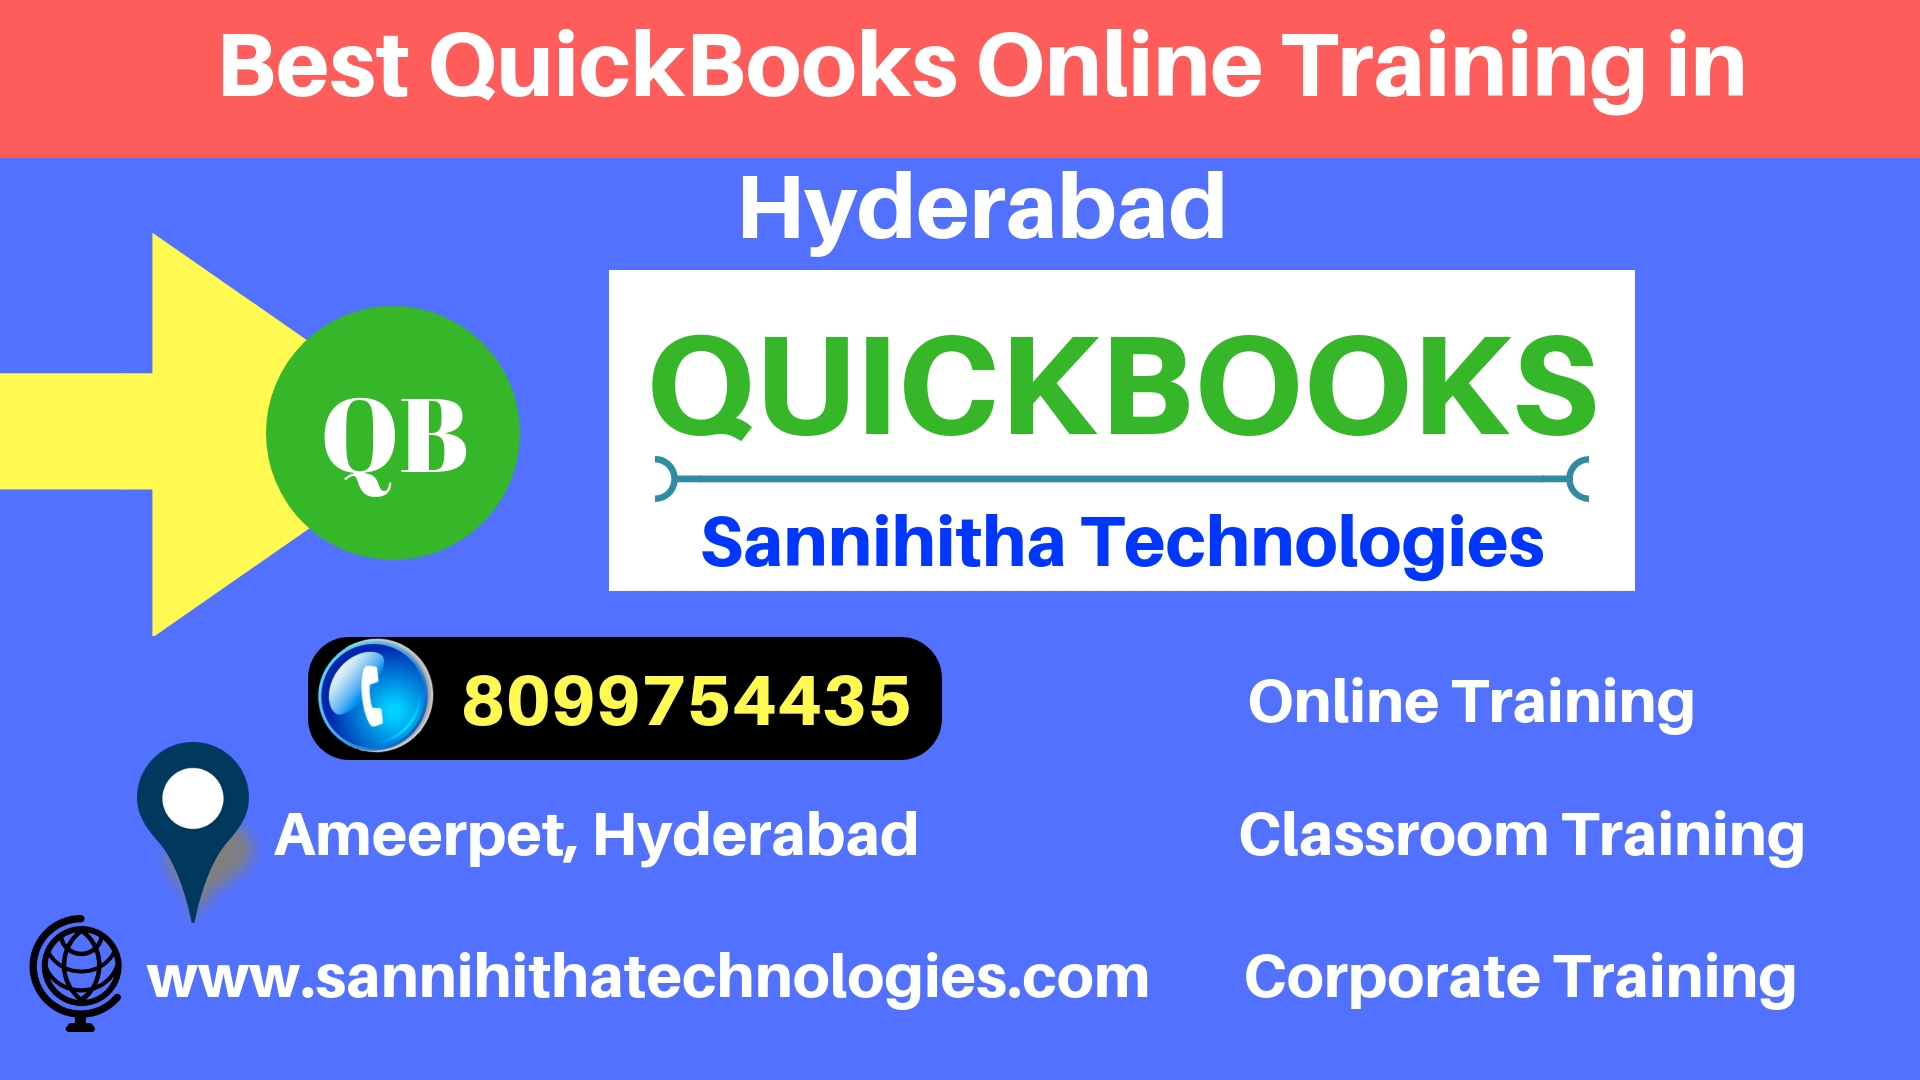 Best QuickBooks OnlinevTraining in Hyderabad-Classes-Computer Classes-Programming Classes-Hyderabad